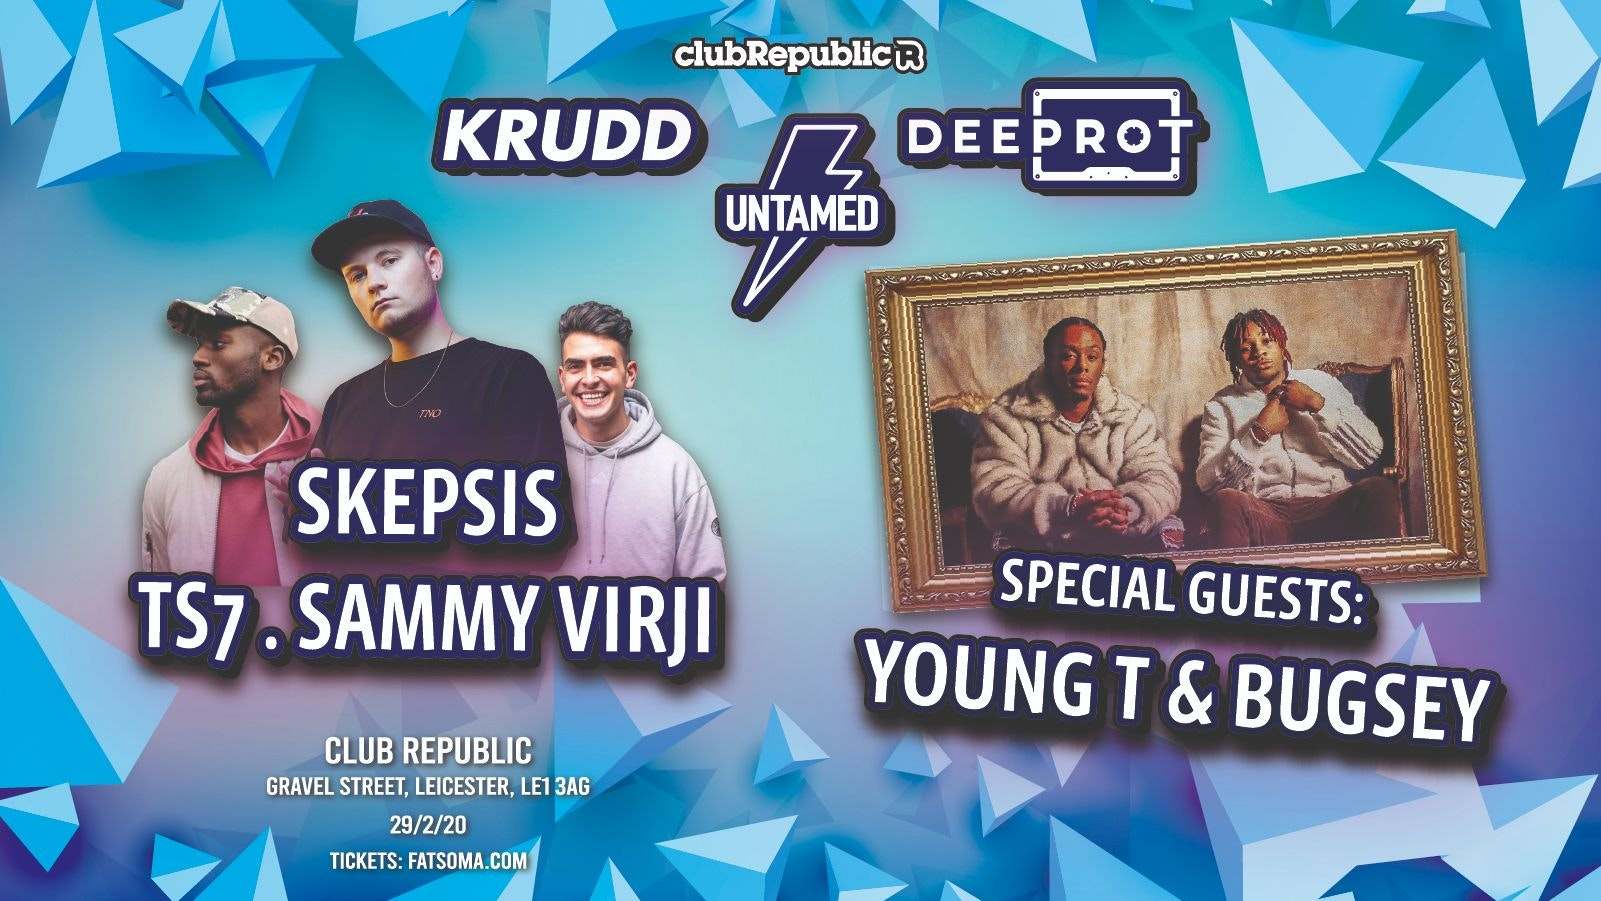 [LIMITED TICKETS REMAINING!] Untamed x Krudd x Deeprot Present: Skepsis, TS7, Sammy Virji // Special Guests Young T & Bugsey